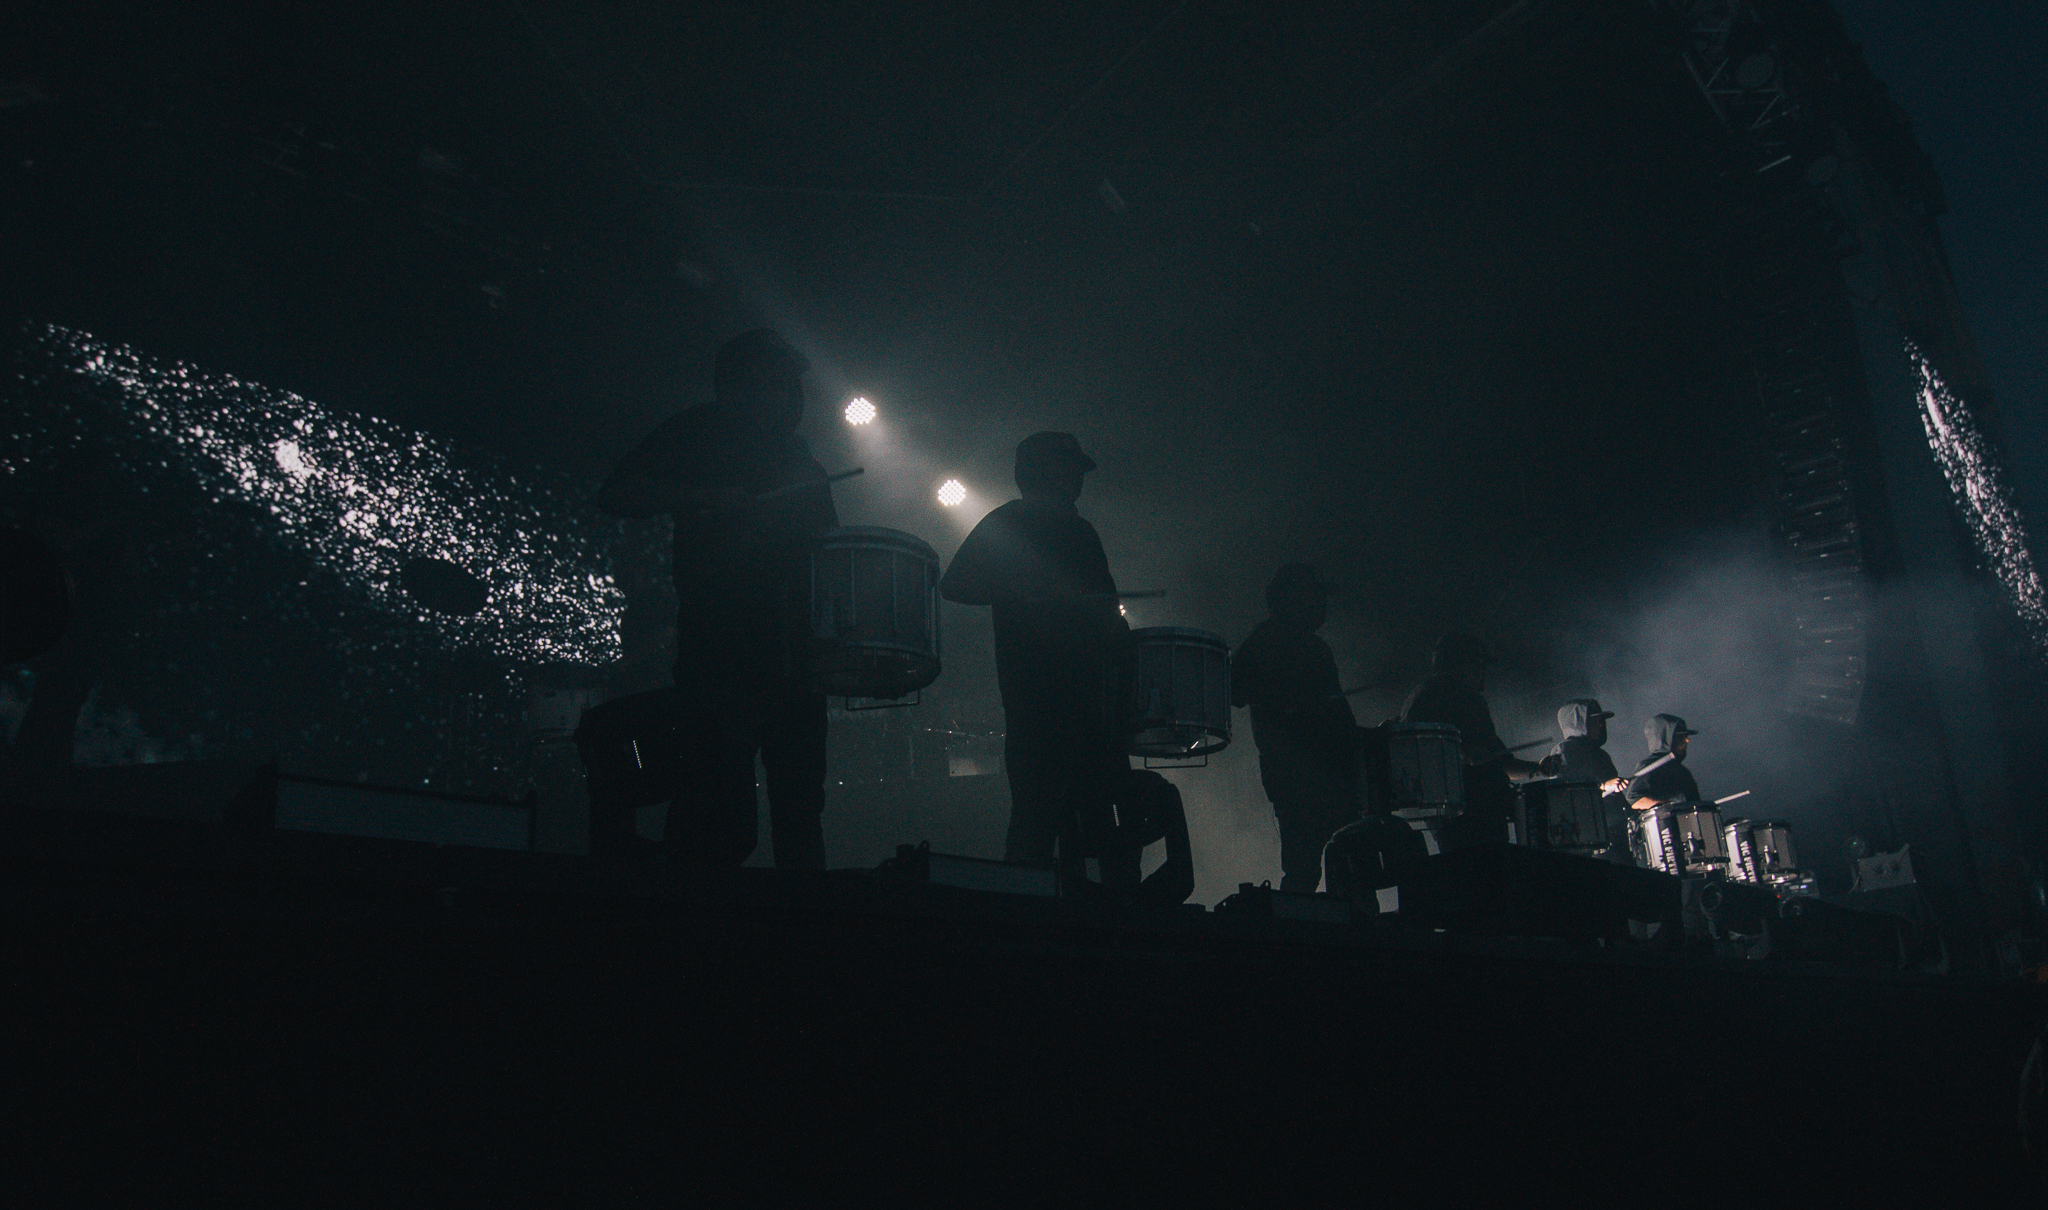 Laura Ord Photography | Austin, TX Concert Photography | ODESZA at Hangout Music Fest in Gulf Shores, AL